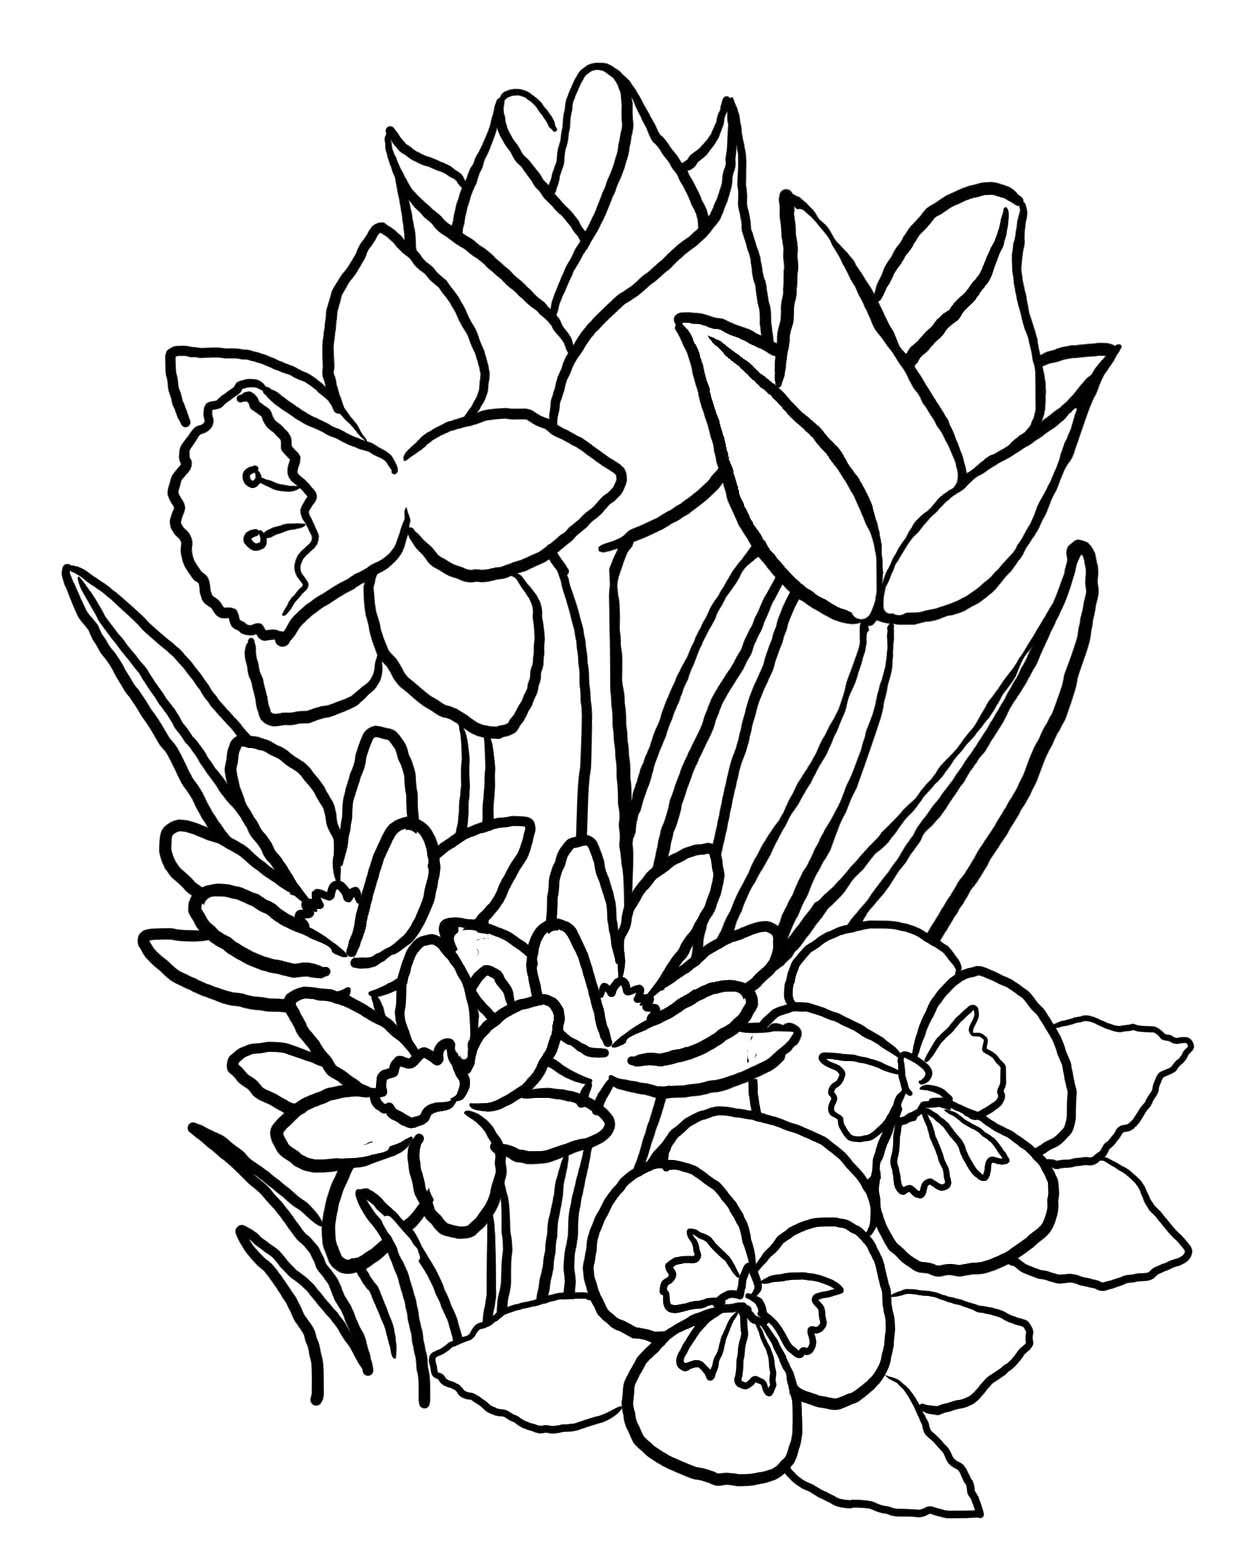 flower printable coloring sheets flowers coloring pages 10 free fun printable coloring printable flower coloring sheets